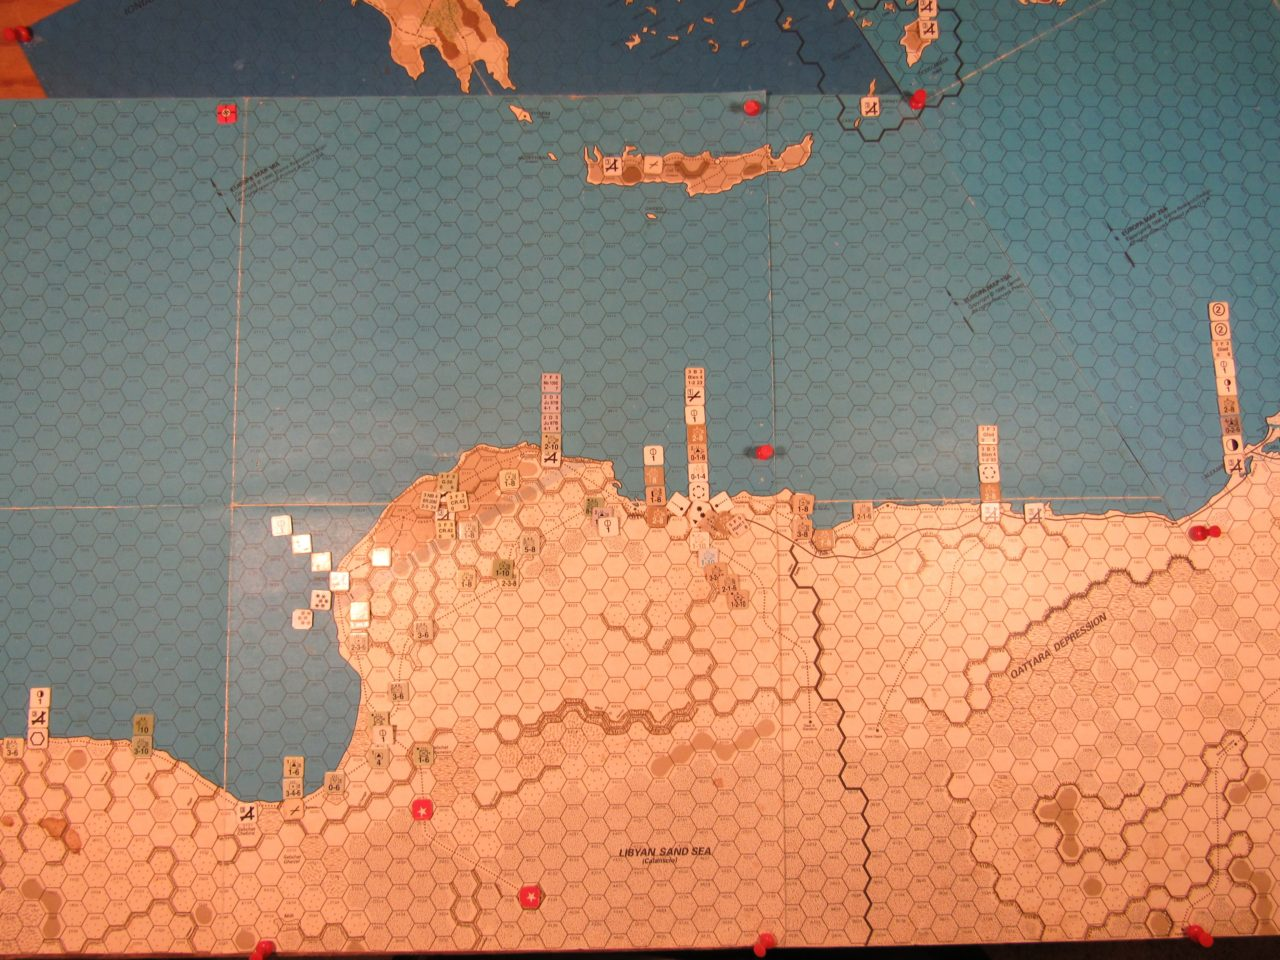 WW ME/ER-II/Crete Scenario Apr II 41 Allied turn, at the end of step 21 of the Initial Phase